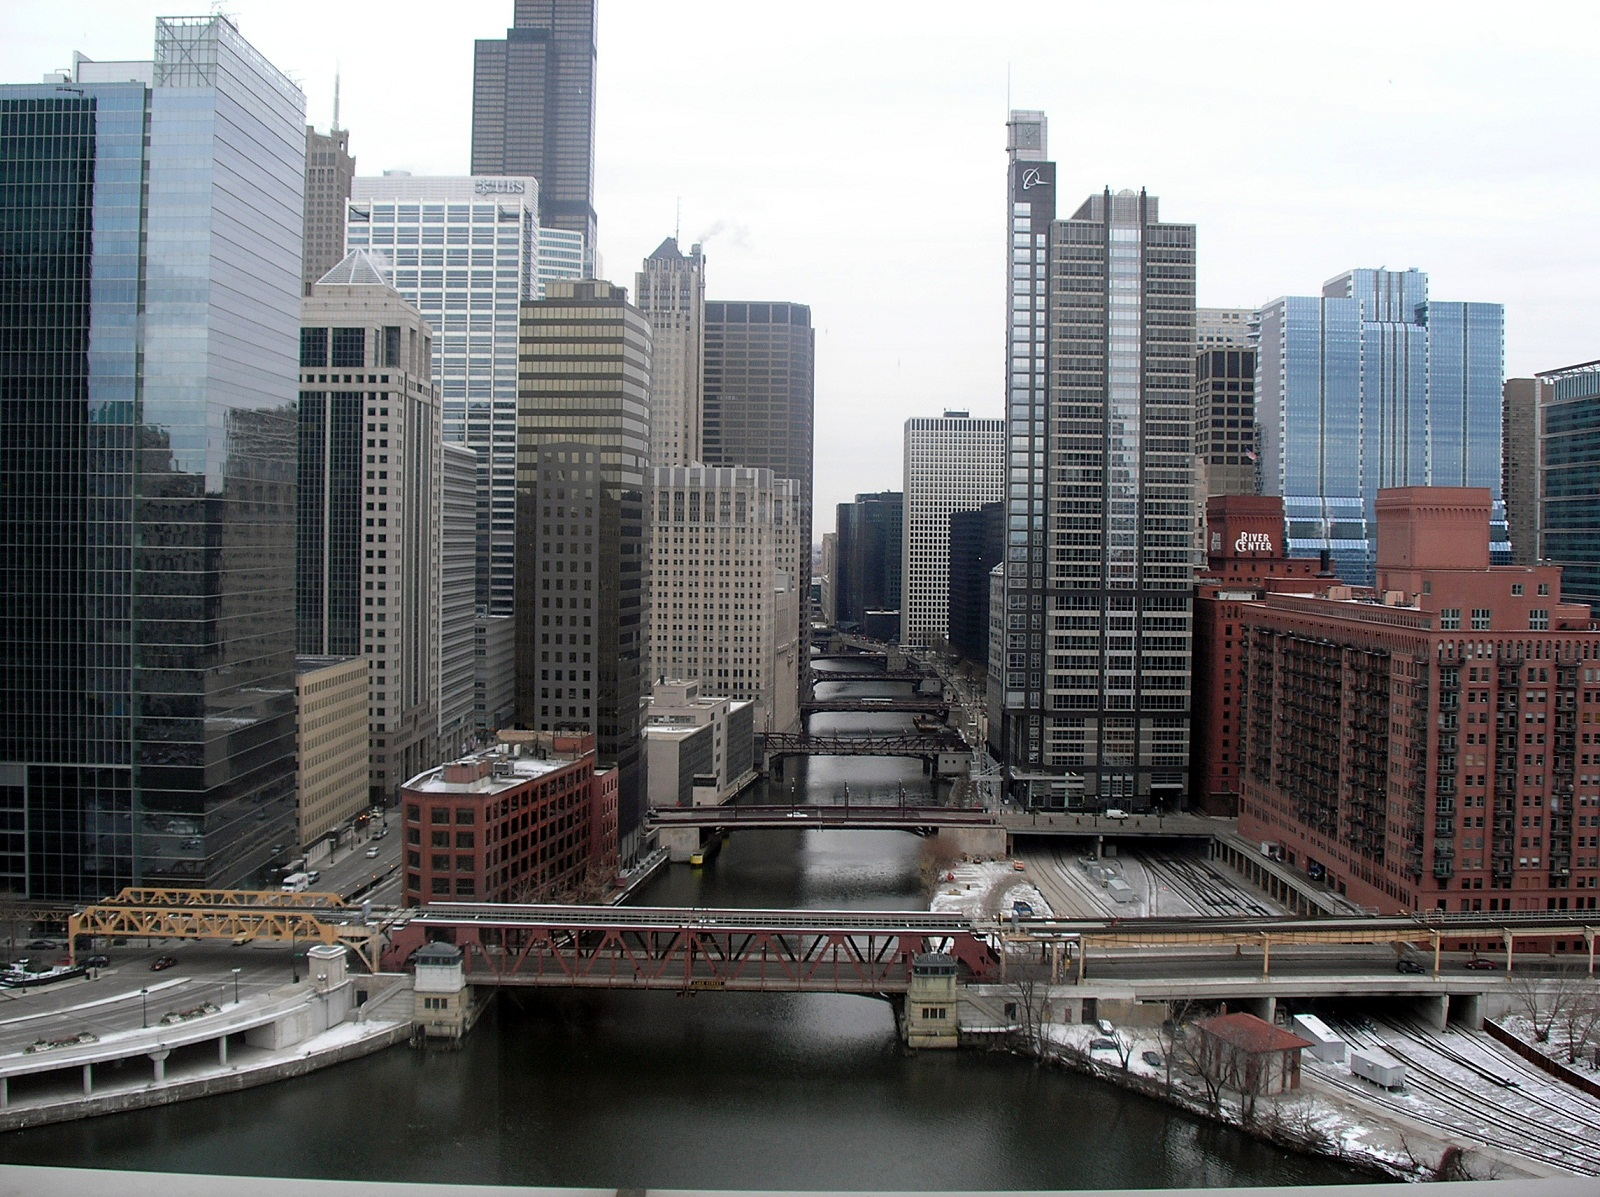 Chicago, USA, Chicago river and skyscrapers